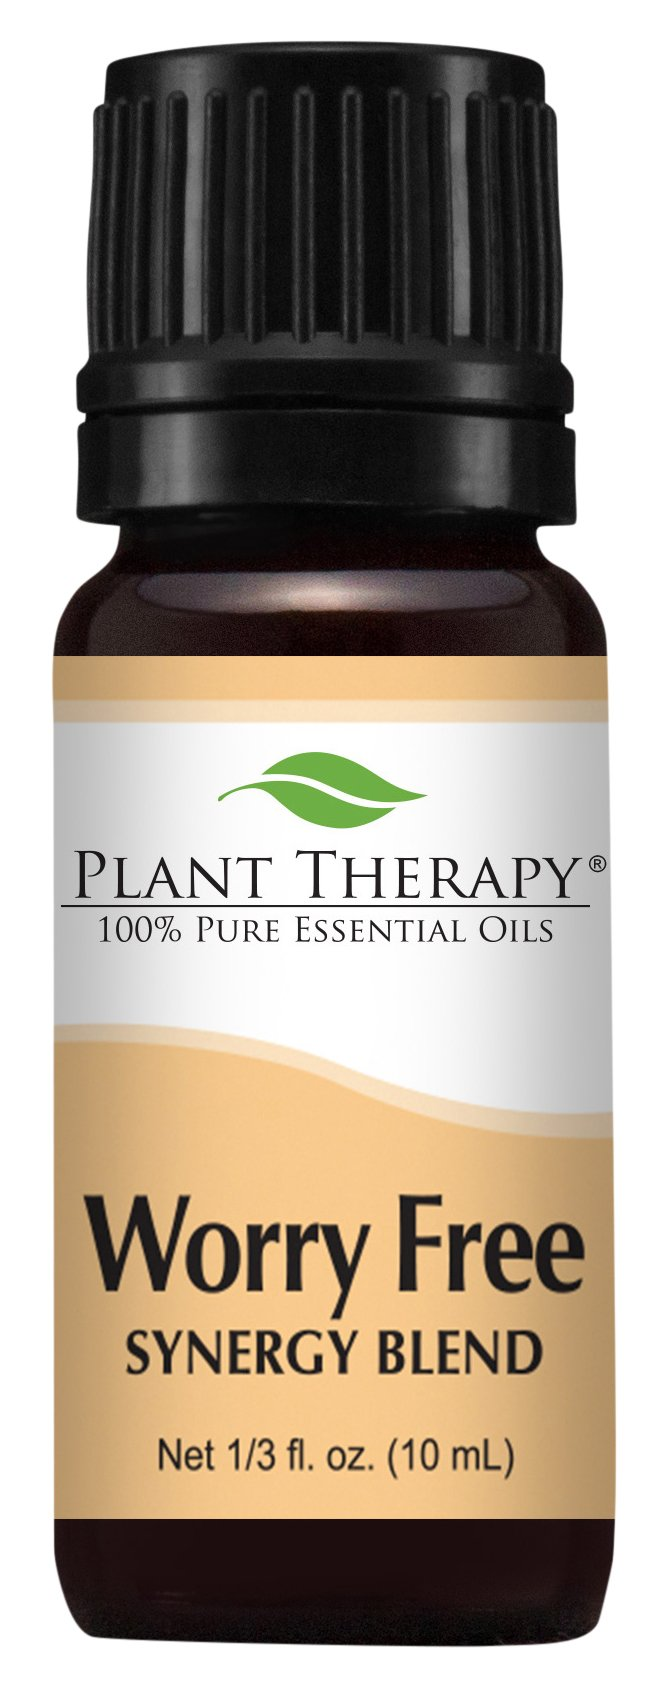 Plant Therapy Worry Free (Stress Free) Synergy Essential Oil Blend. Blend of: Lavender, Marjoram, Ylang Ylang, Sandalwood, Vanilla and Roman Chamomile. 10 ml (1/3 oz).